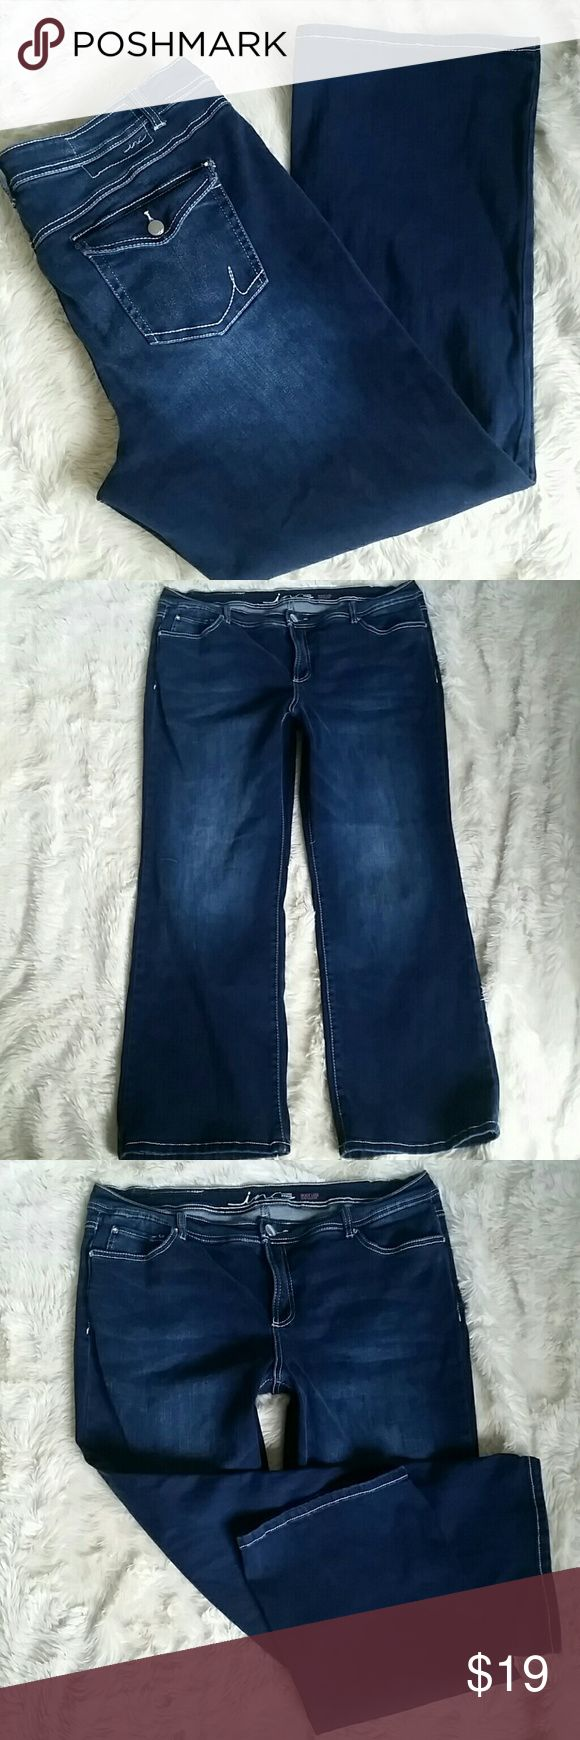 """INC Denim Bootcut Stretch Jeans Plus Size 20W Super soft and stretchy inky dark blue bootcut jeans. Slim tech fit is stretchy and flattering. Stretch denim made out of a comfy tri blend of cotton, polyester and spandex. Diamond bling rivets. Button and zip fly. Flap button back pockets. Pre-owned in good condition with no rips, holes, tears or stains. Plus Size 20W.   Waist 20.5"""" Rise 11"""" Inseam 31"""" Leg Opening 11"""" INC International Concepts Jeans Boot Cut"""